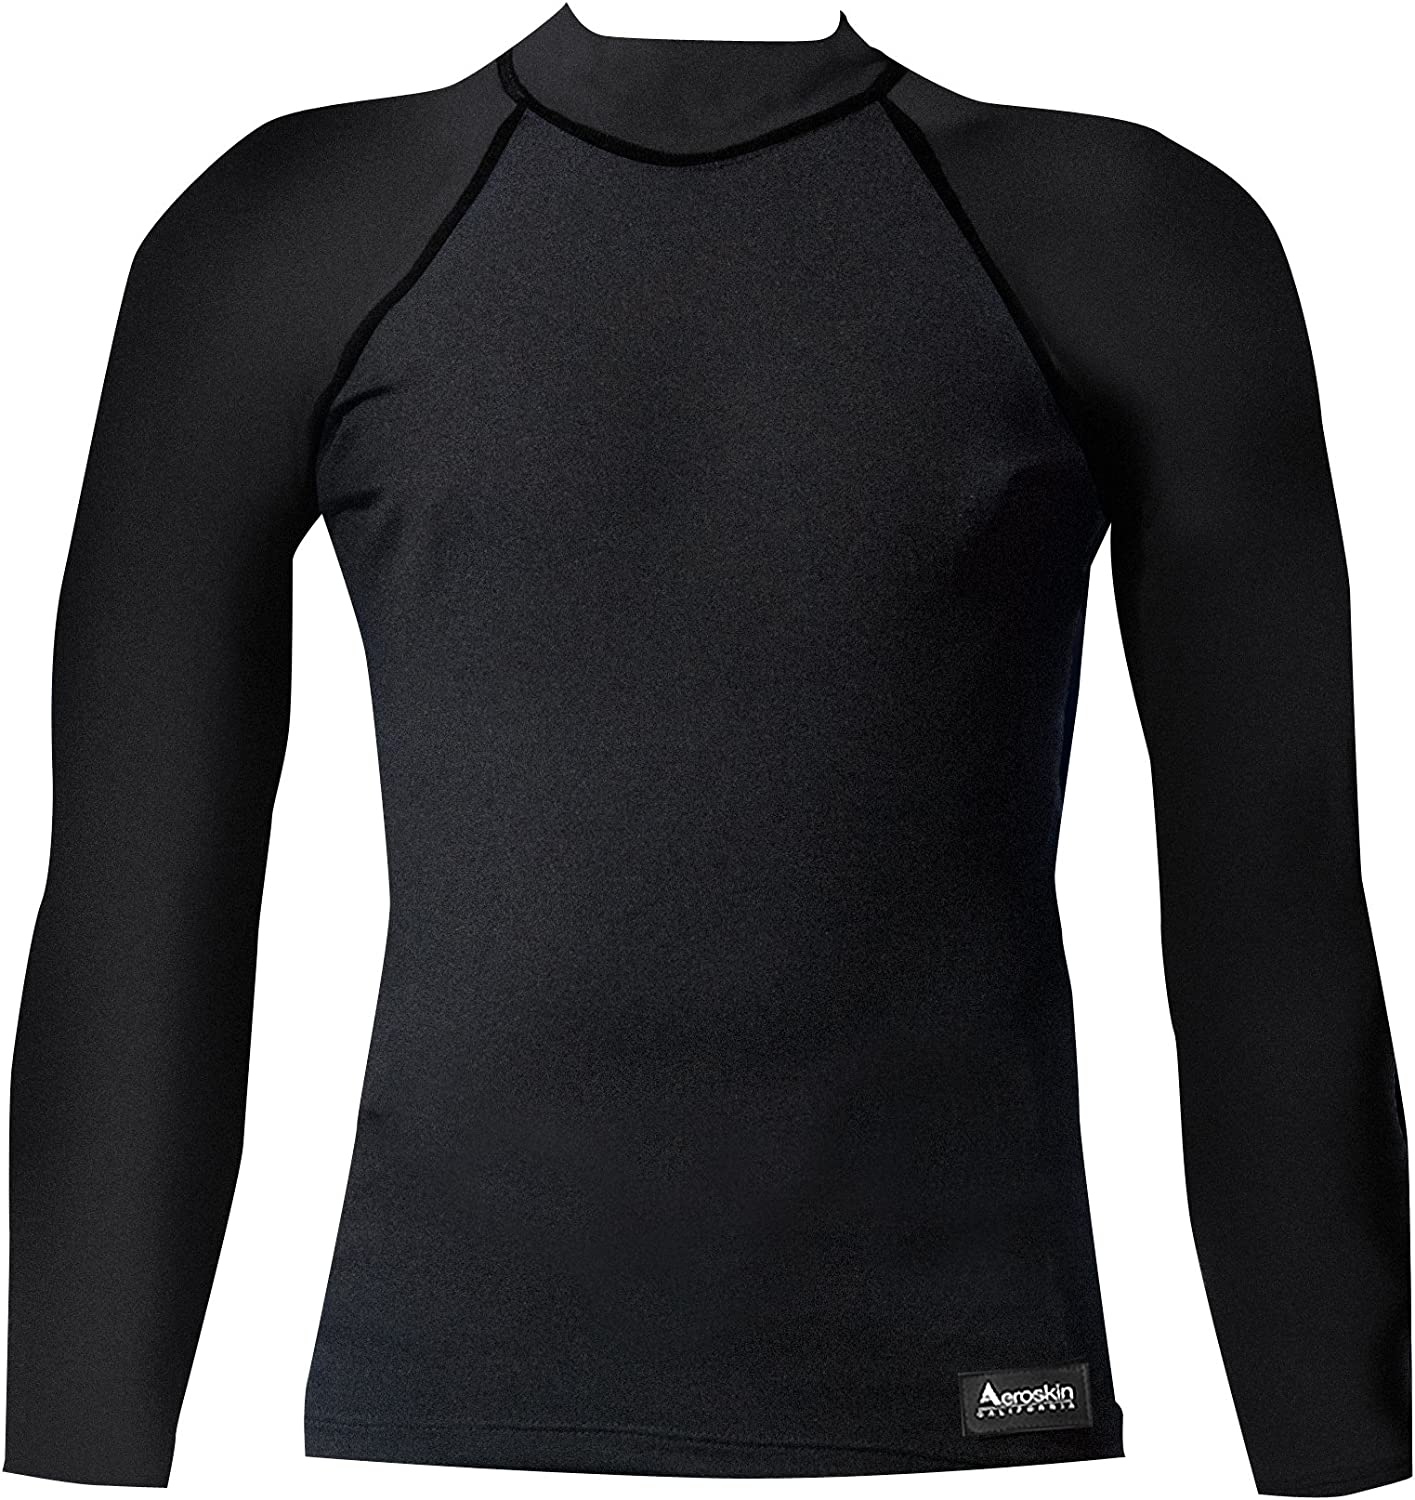 Aeroskin Nylon Long Sleeve Rash Guard with color Accent (Black, XXLarge)